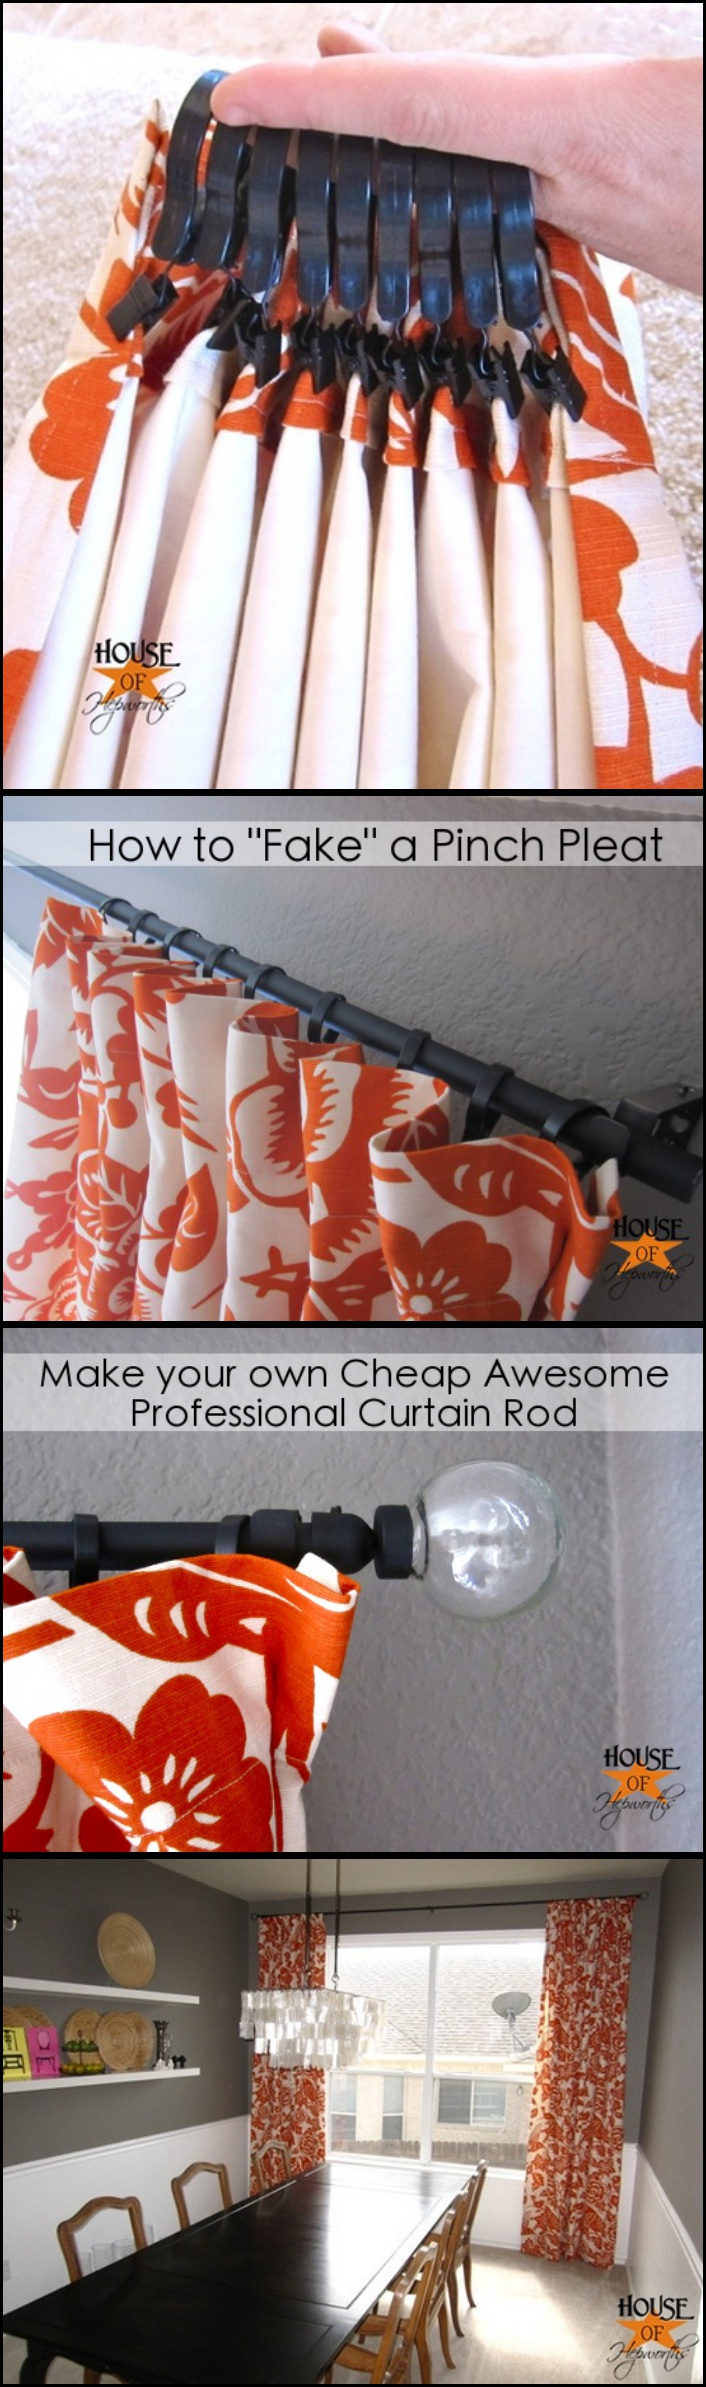 How to Make Cheap, Awesome, Professional Curtain Rod with PVC Pipe